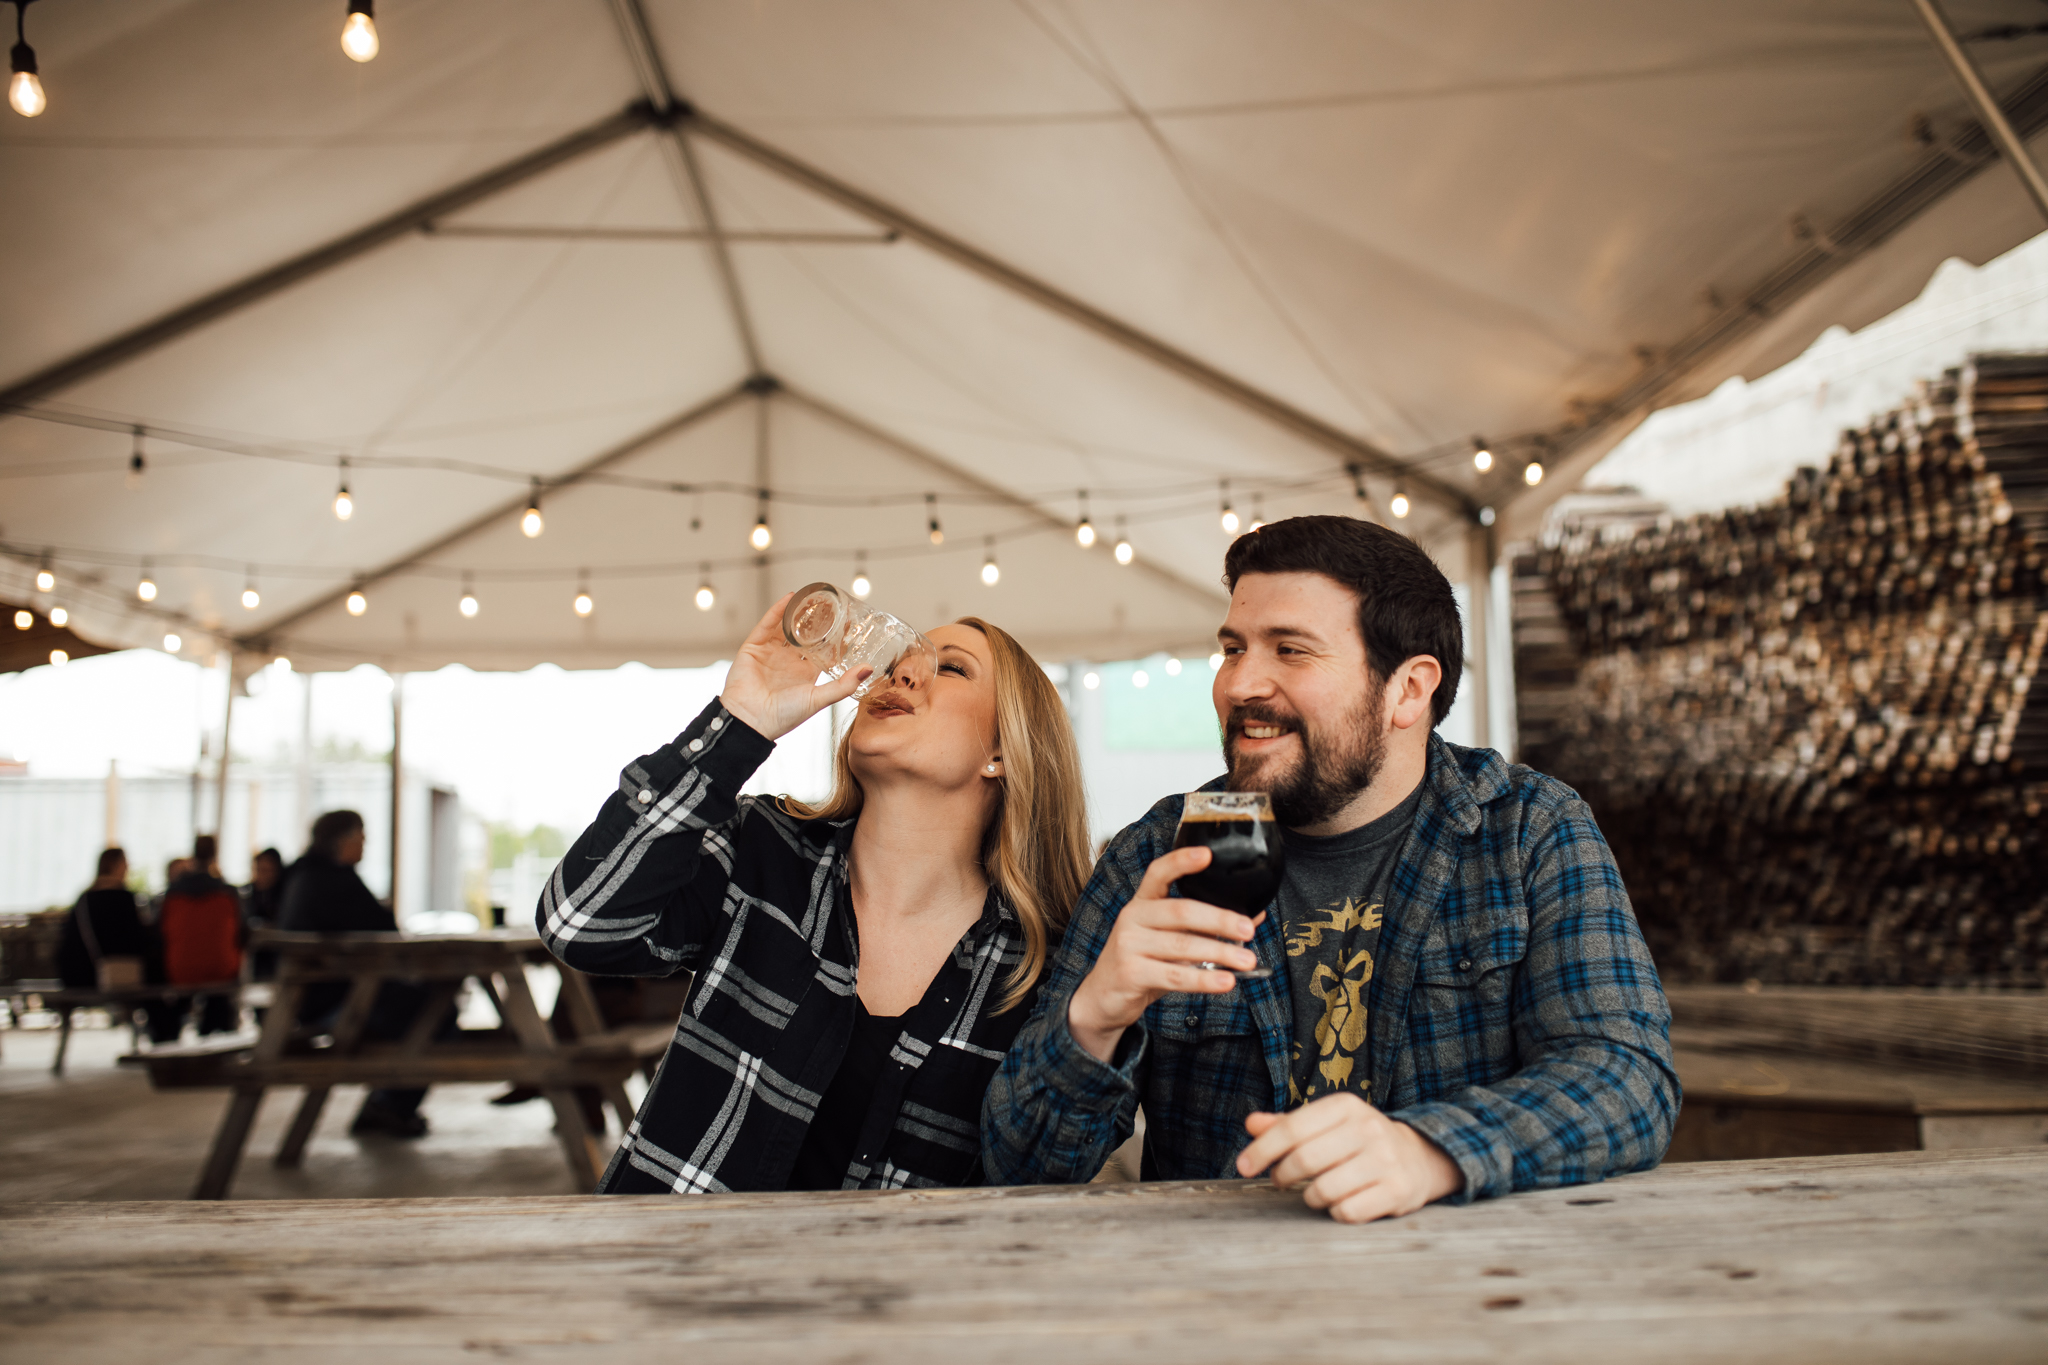 wiseacre-brewing-wedding-photographer-the-warmth-around-you-cassie-cook-photography (1 of 64).jpg